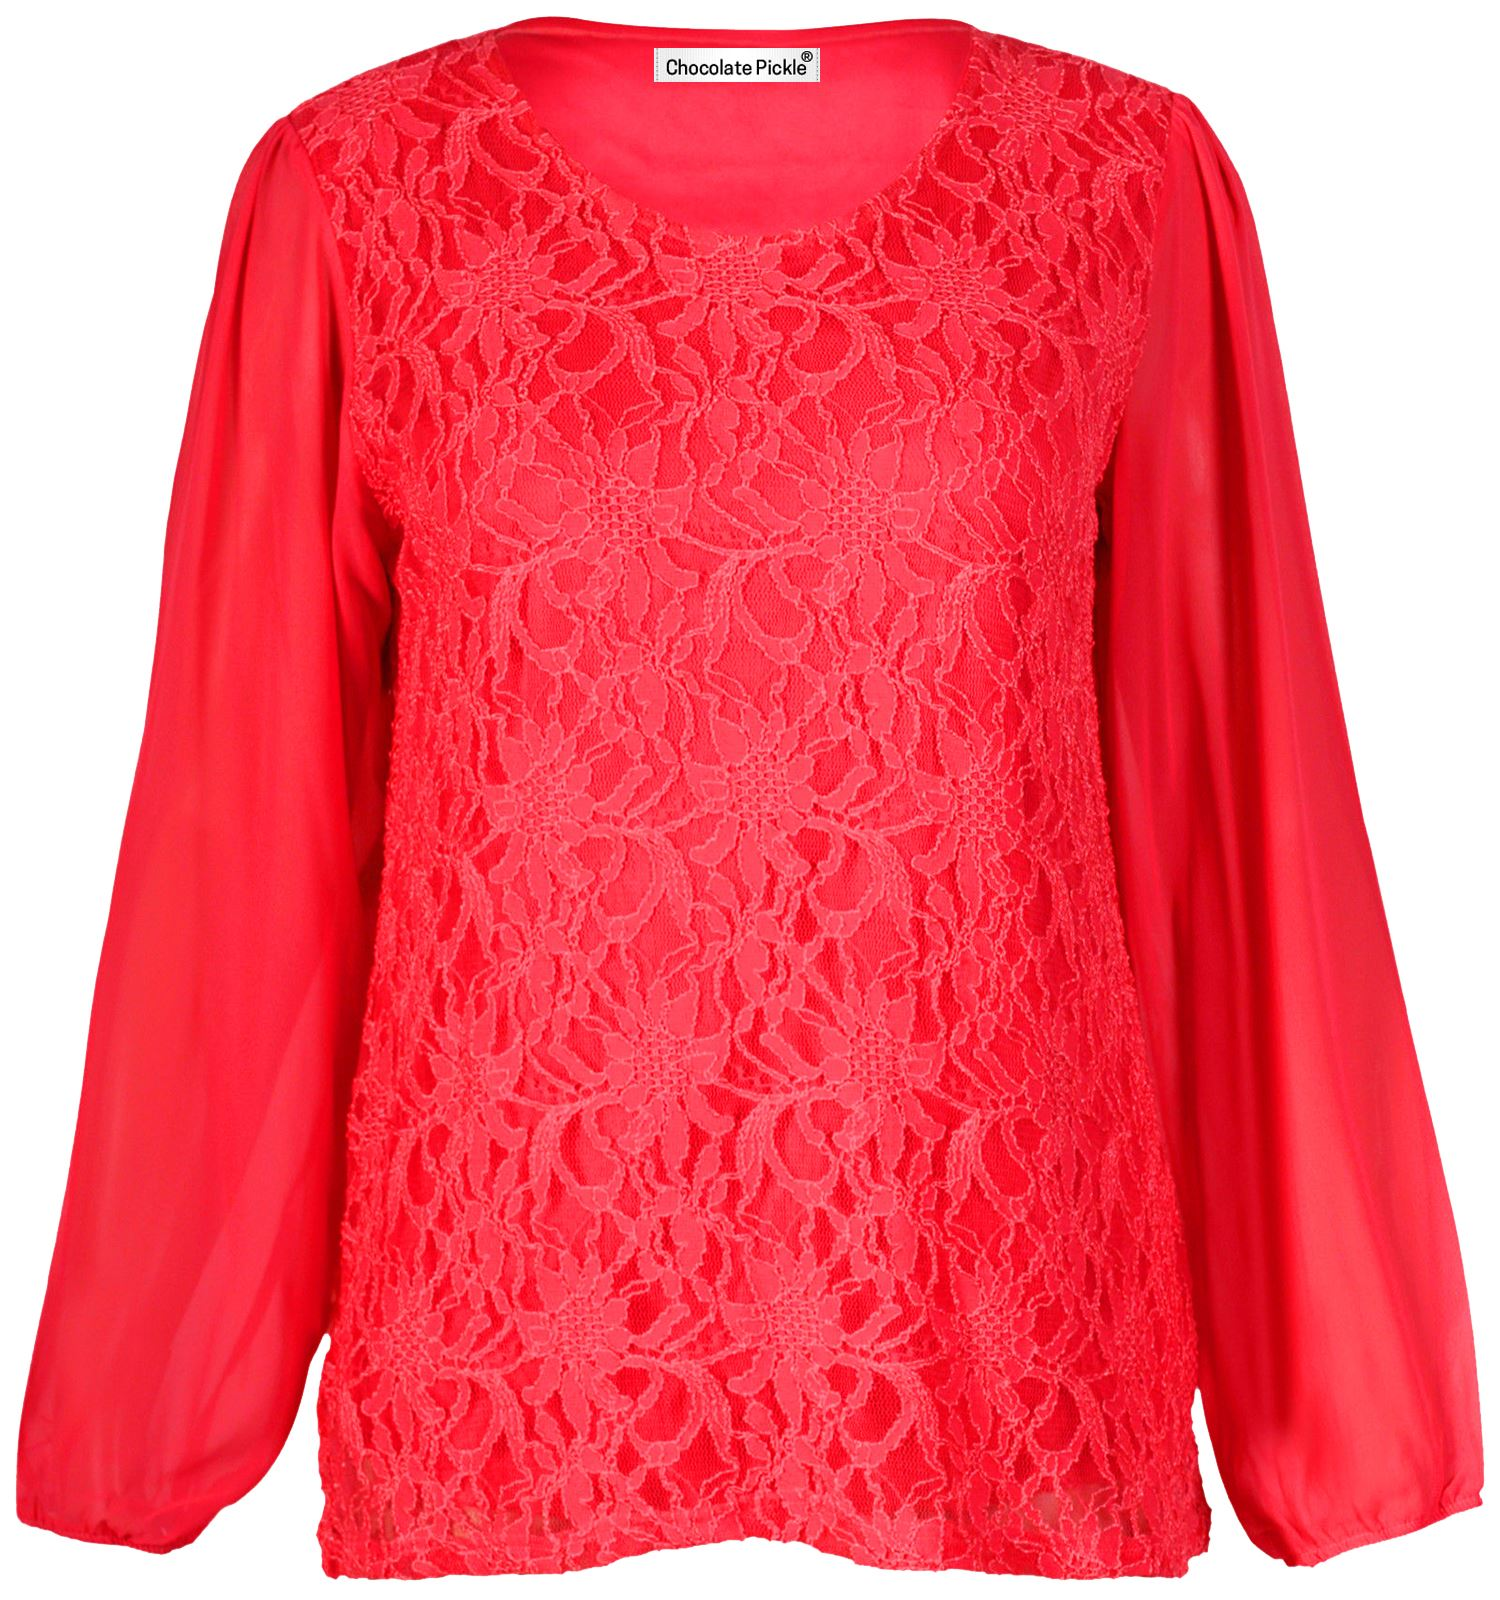 New Women's Plus Size Chiffon Sleeve Floral Lace Lined Tunic Tops 12-22